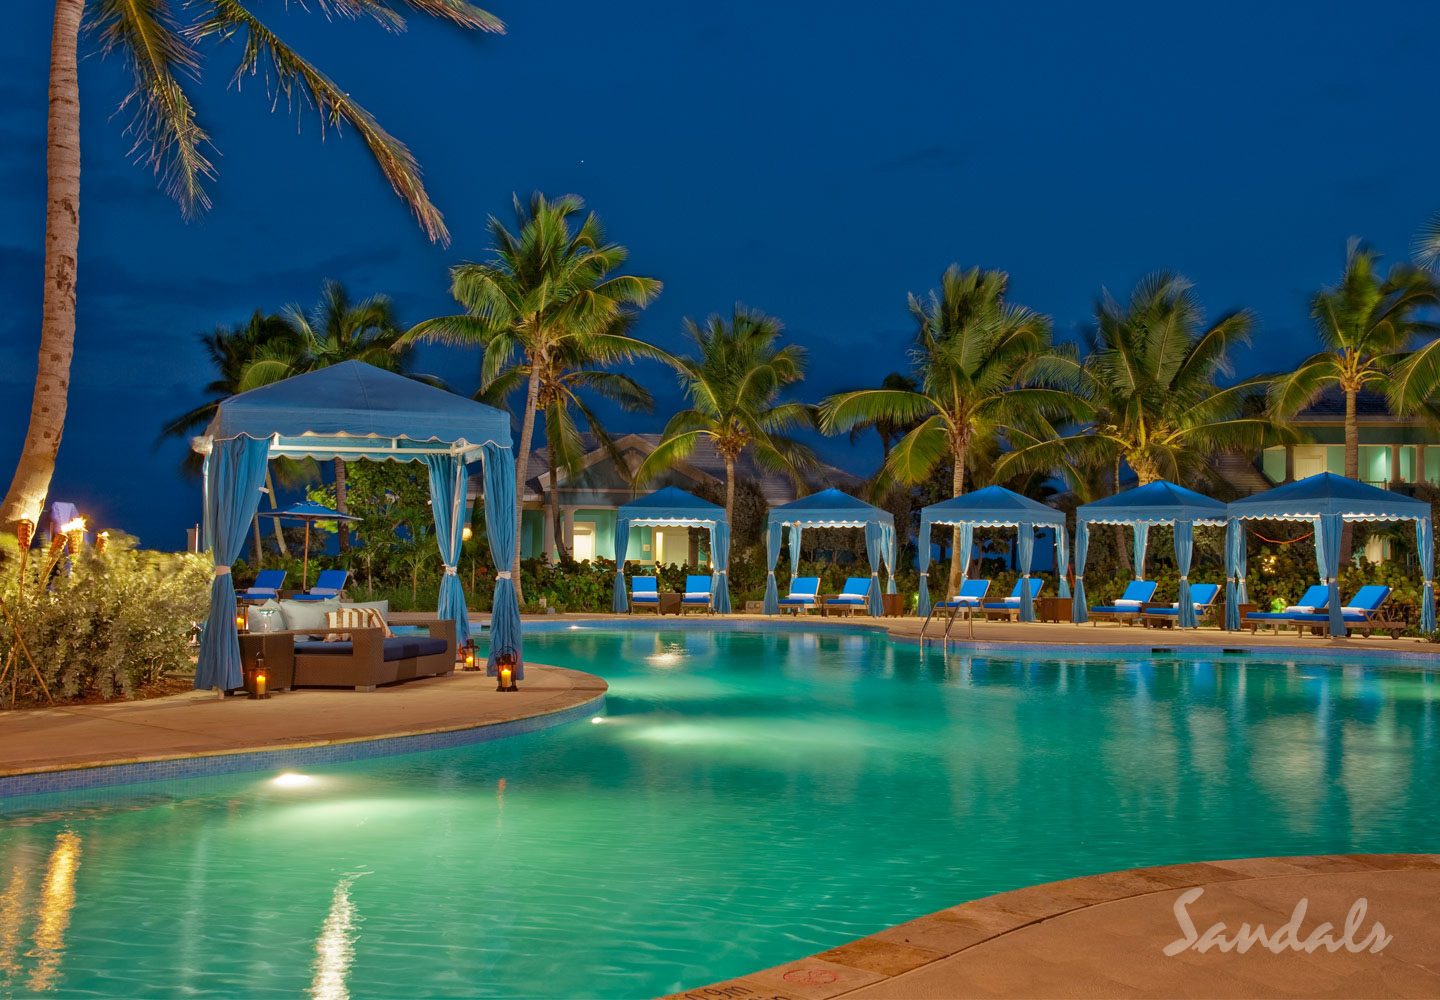 Travel Agency All-Inclusive Resort Sandals Emerald Bay 093